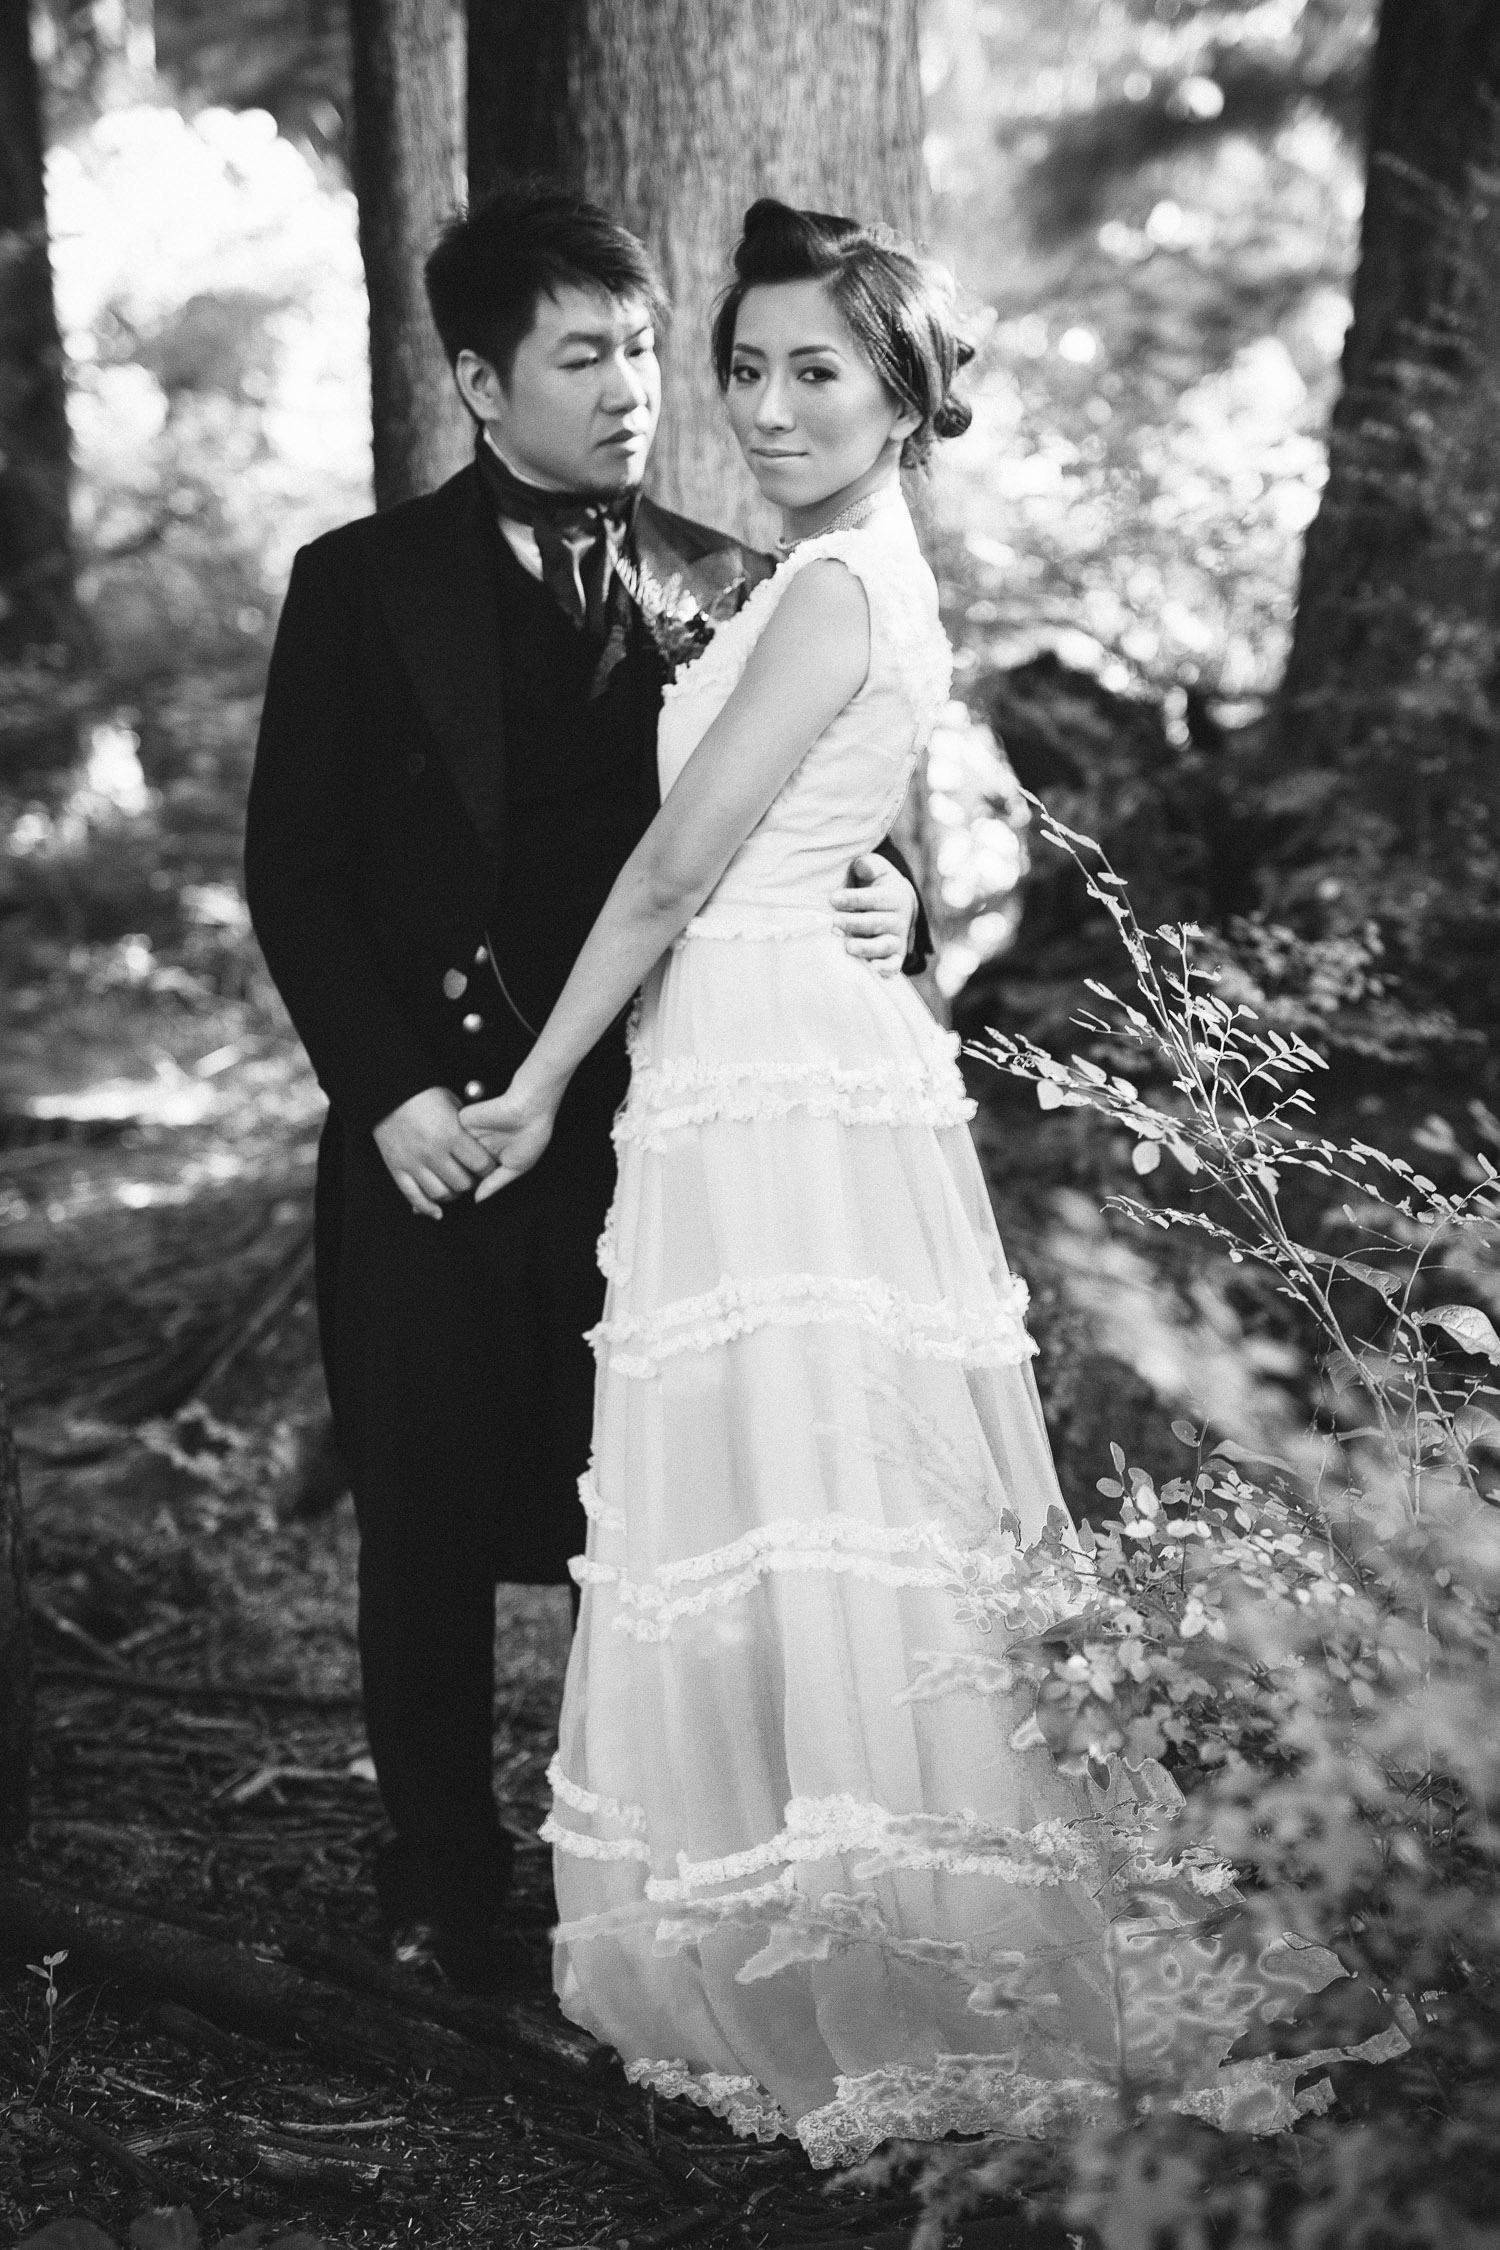 vsco weddding film black and white bride and groom portrait noyo creative vancouver bc